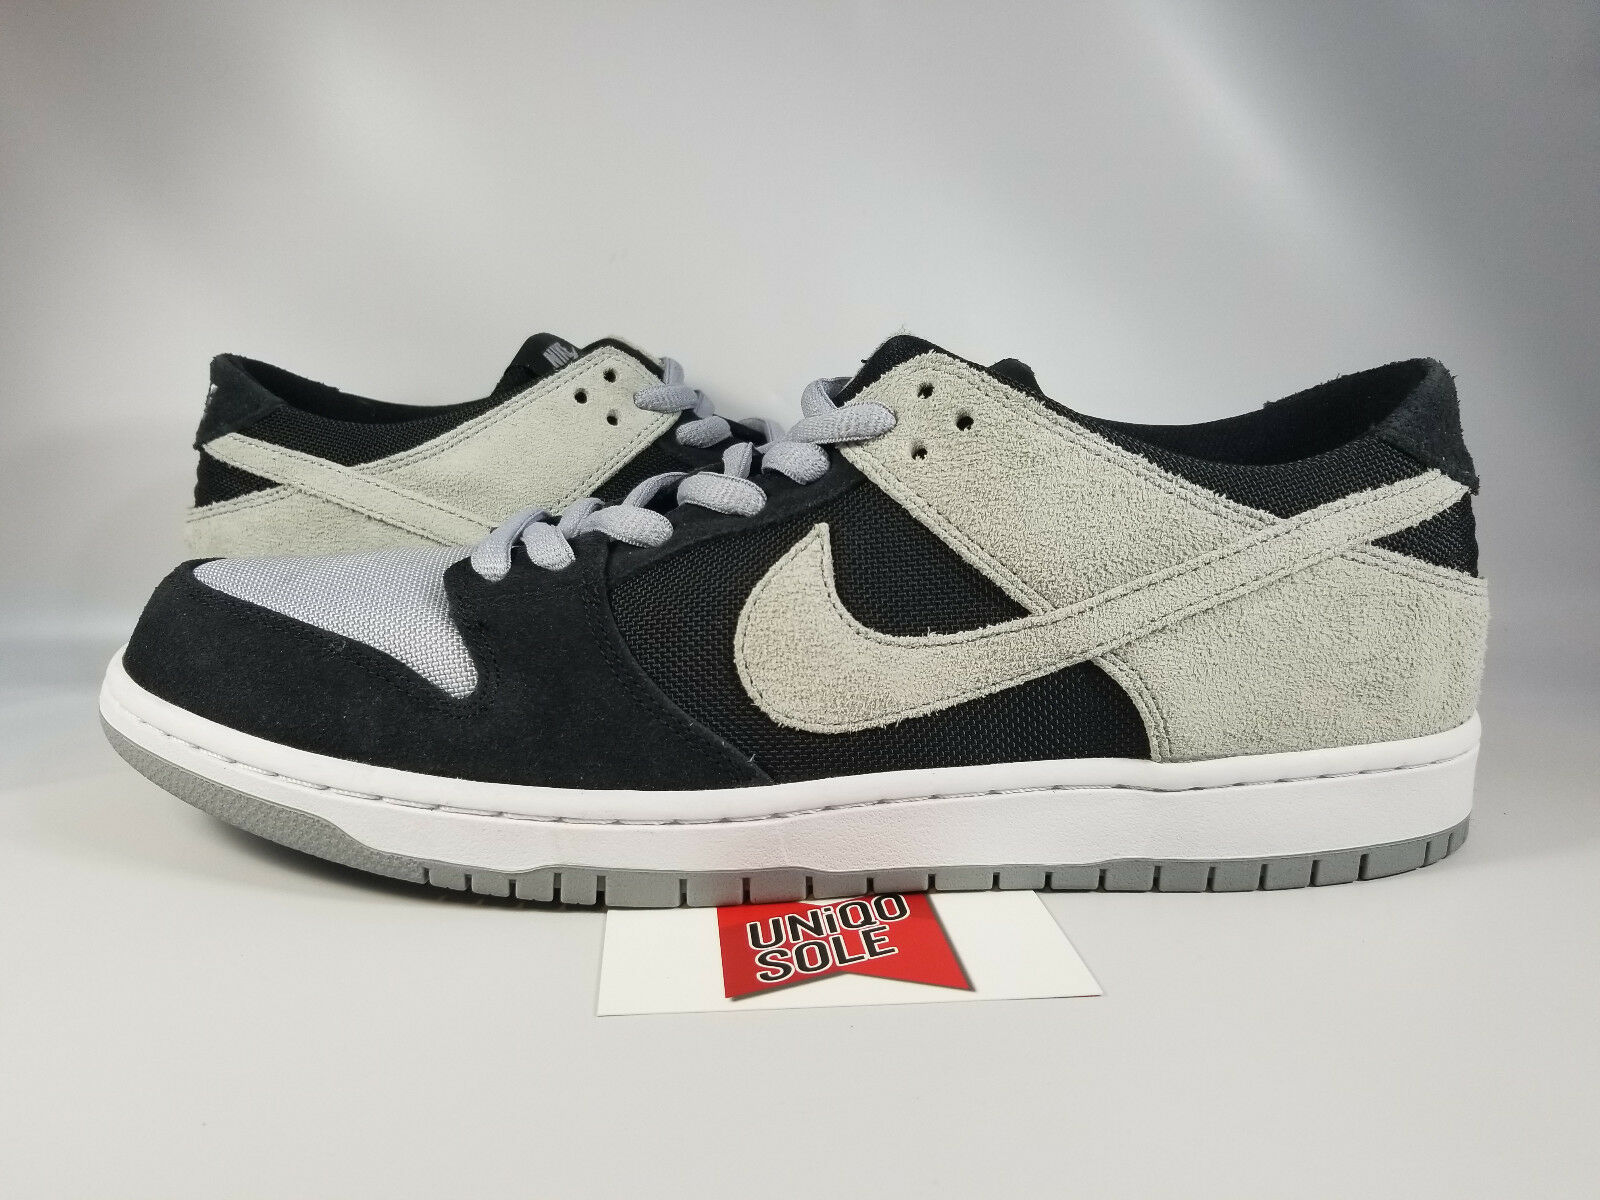 Nike SB Zoom Dunk Low BLACK SHADOW WOLF GREY SUEDE 854866-001 Price reduction